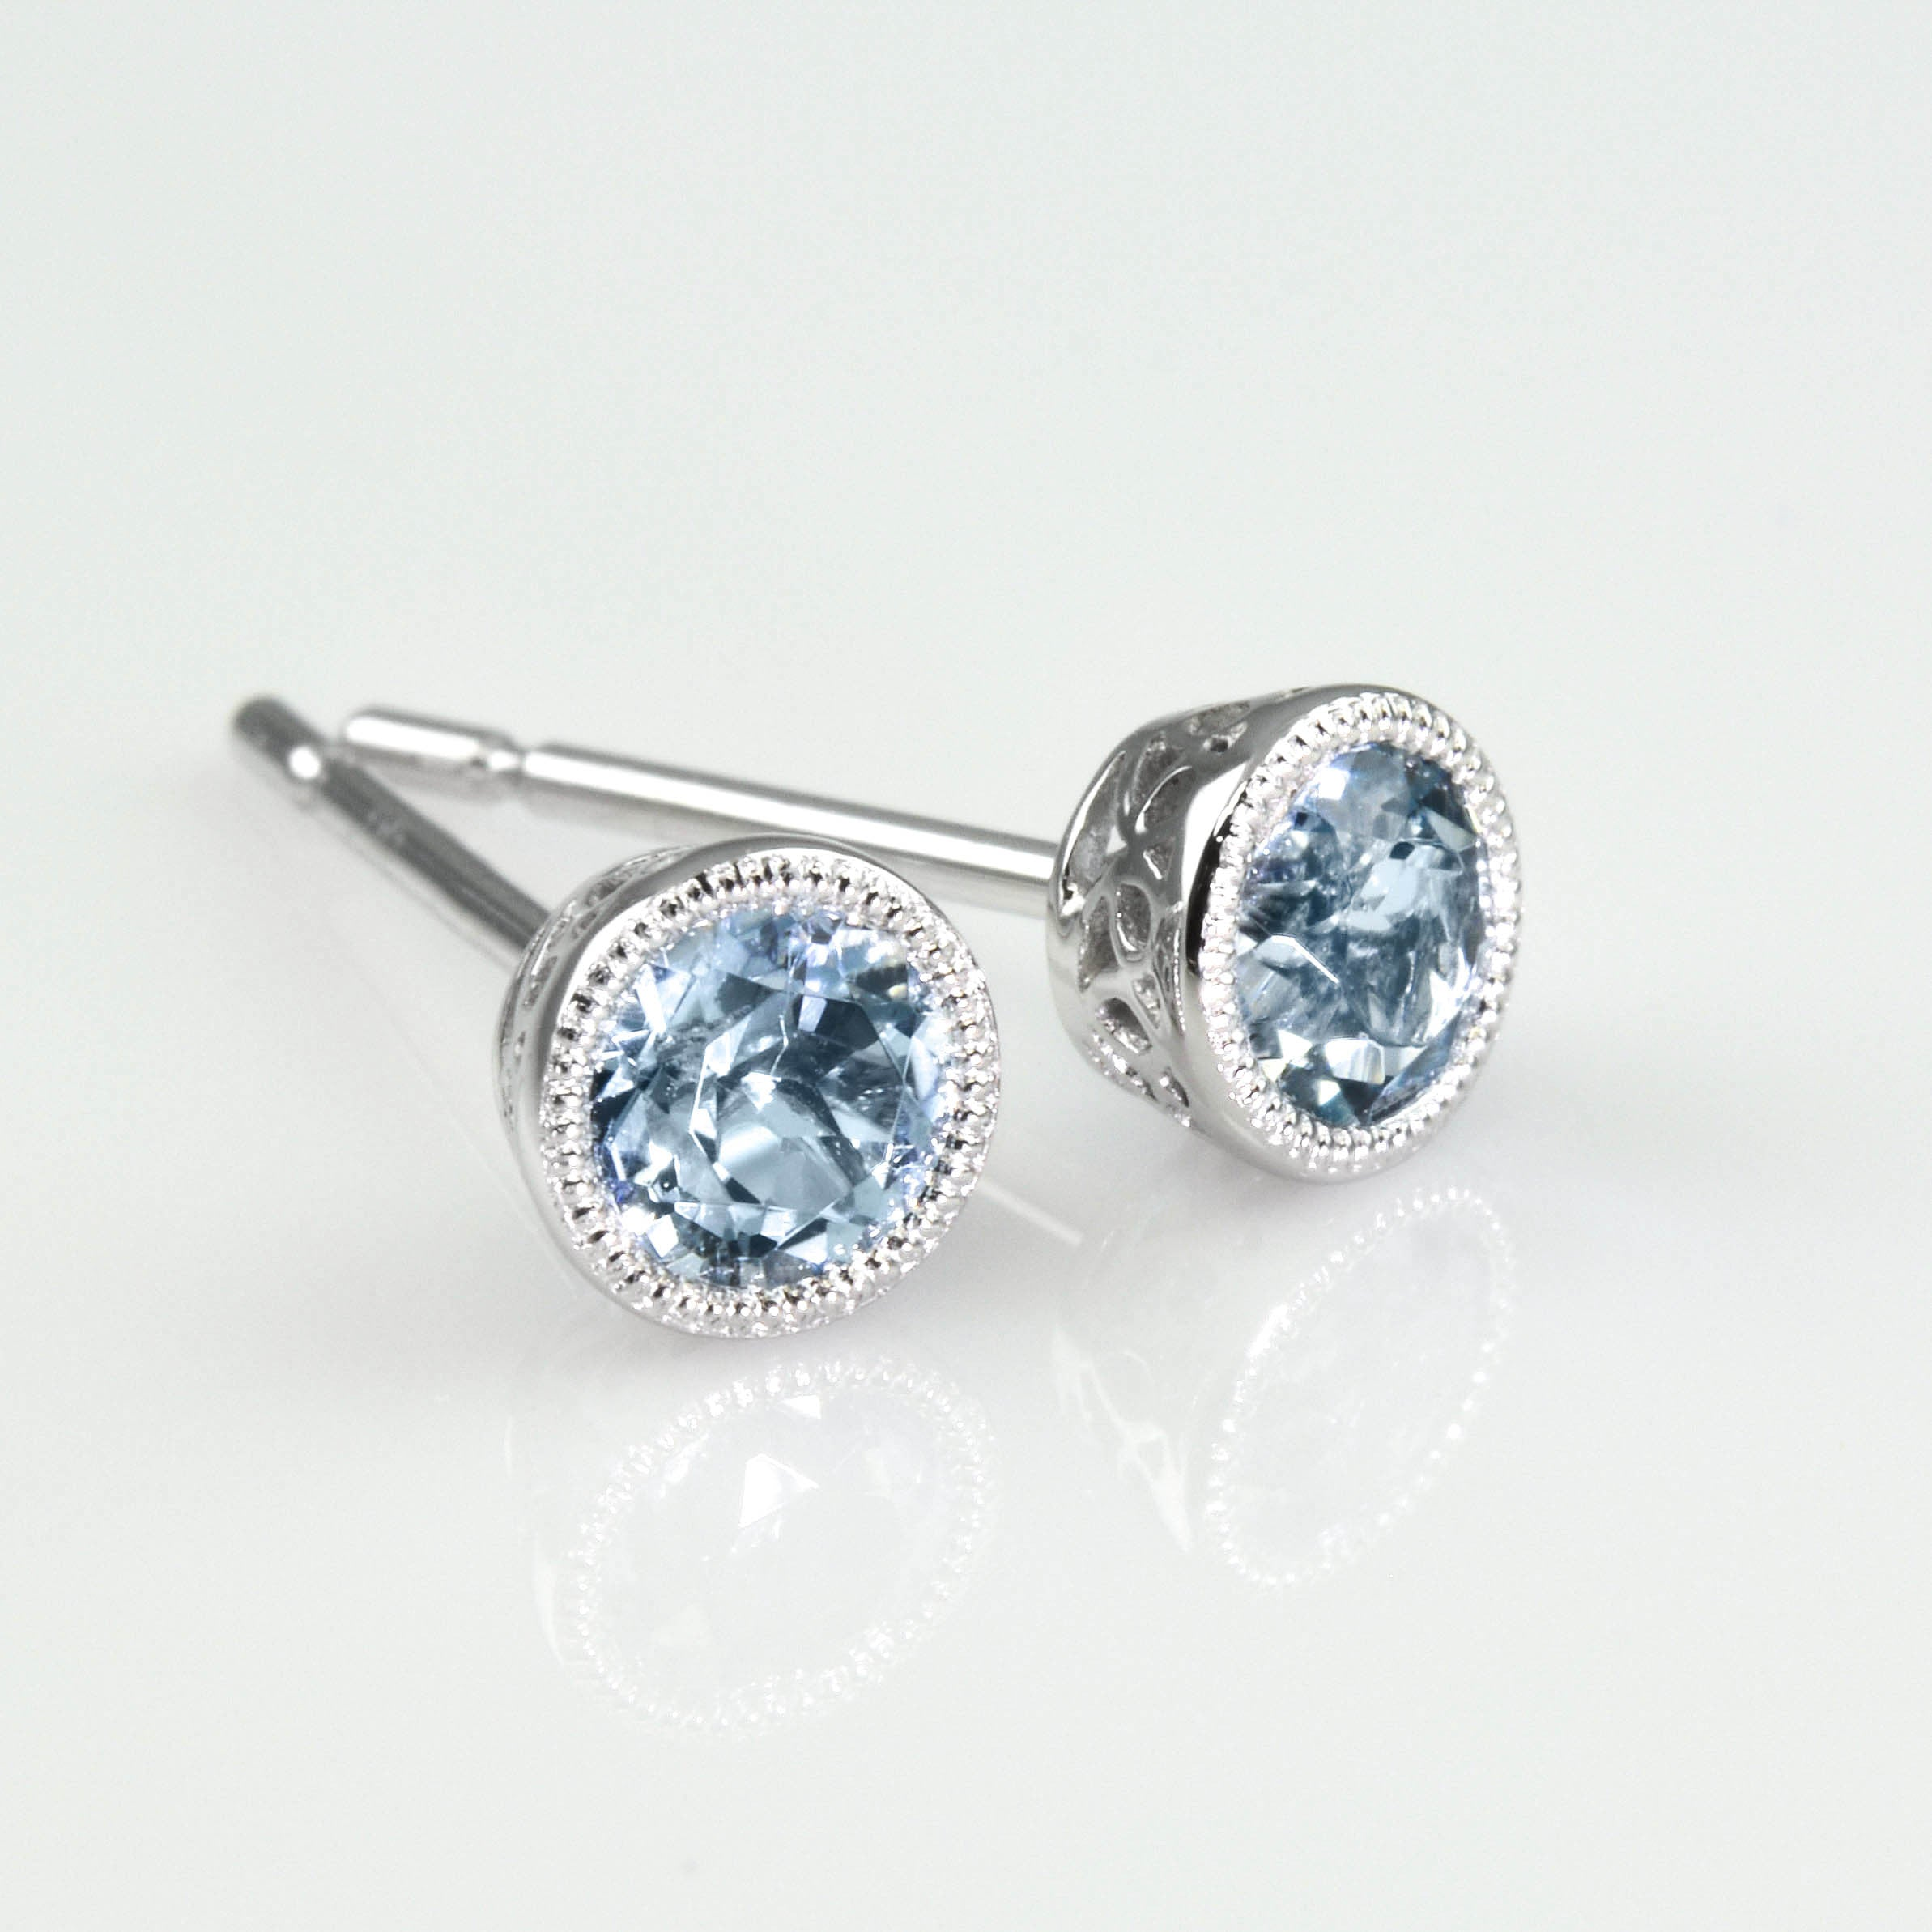 aquamarine march pandora aqua authentic droplets earrings stud l genuine birthstone